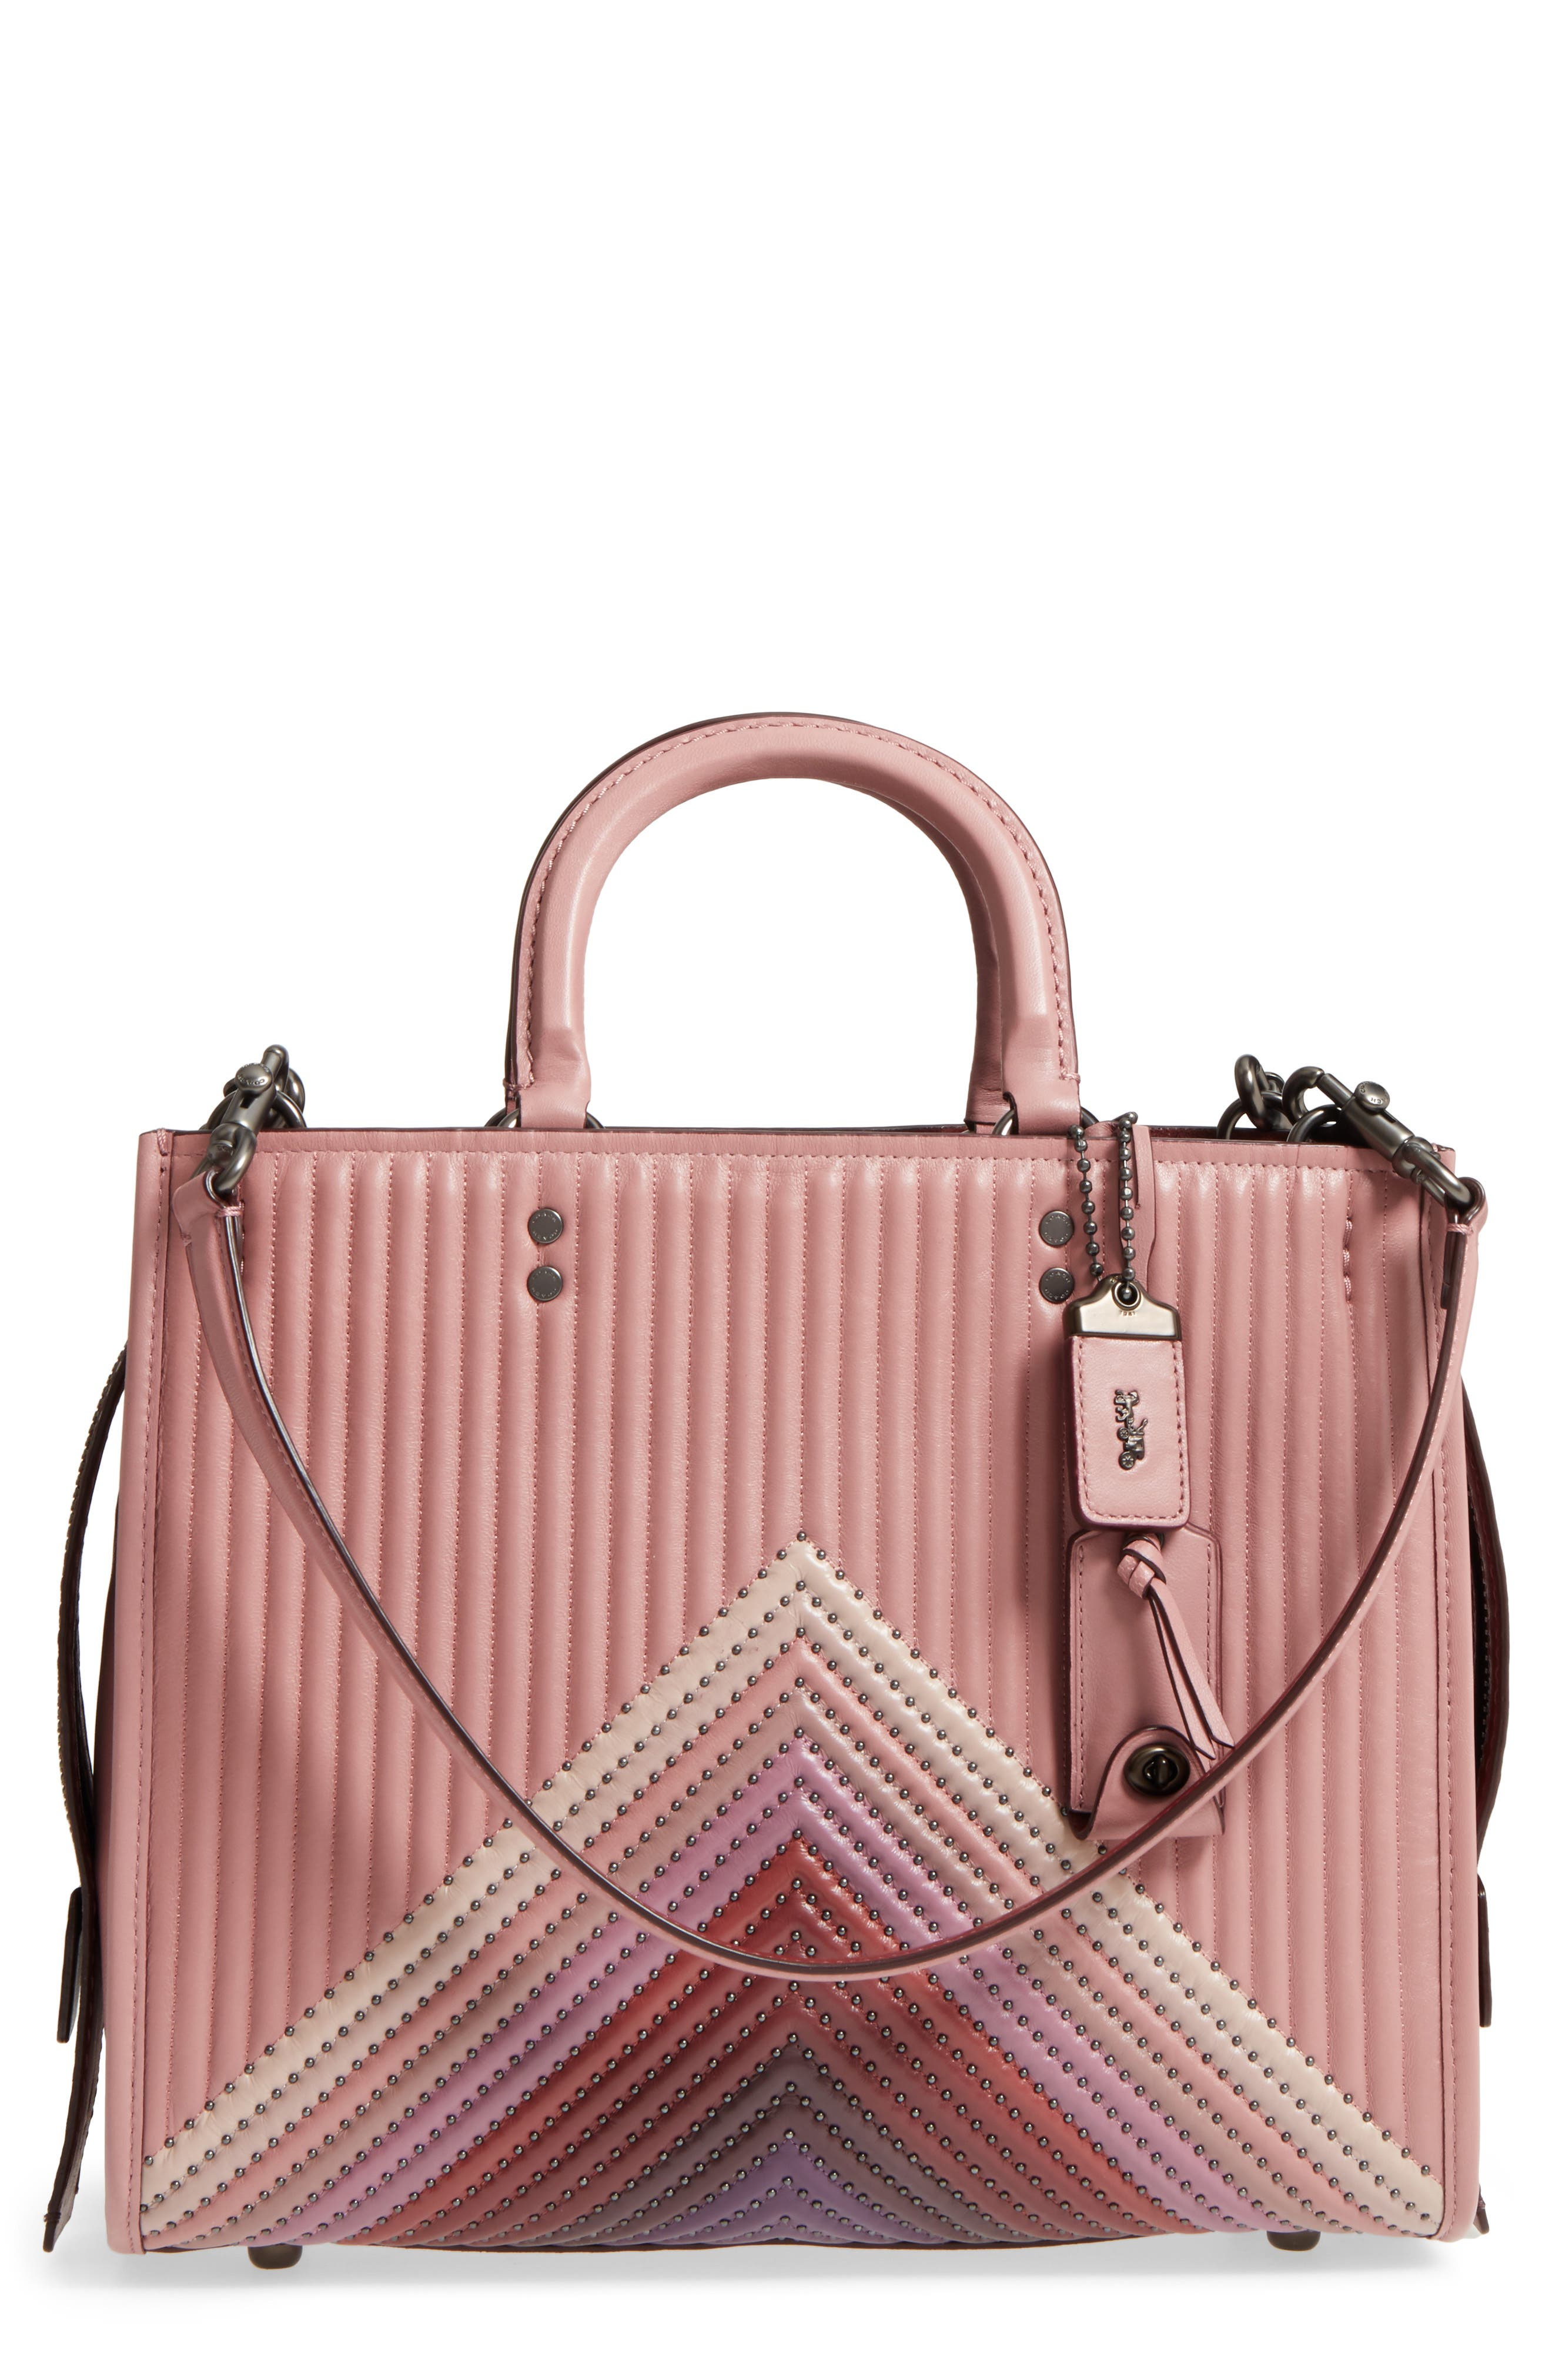 c2e014be0c COACH 1941 Rogue Rivets Quilted Leather Satchel on sale at Nordstrom for  $666.65 was $995, 33% off